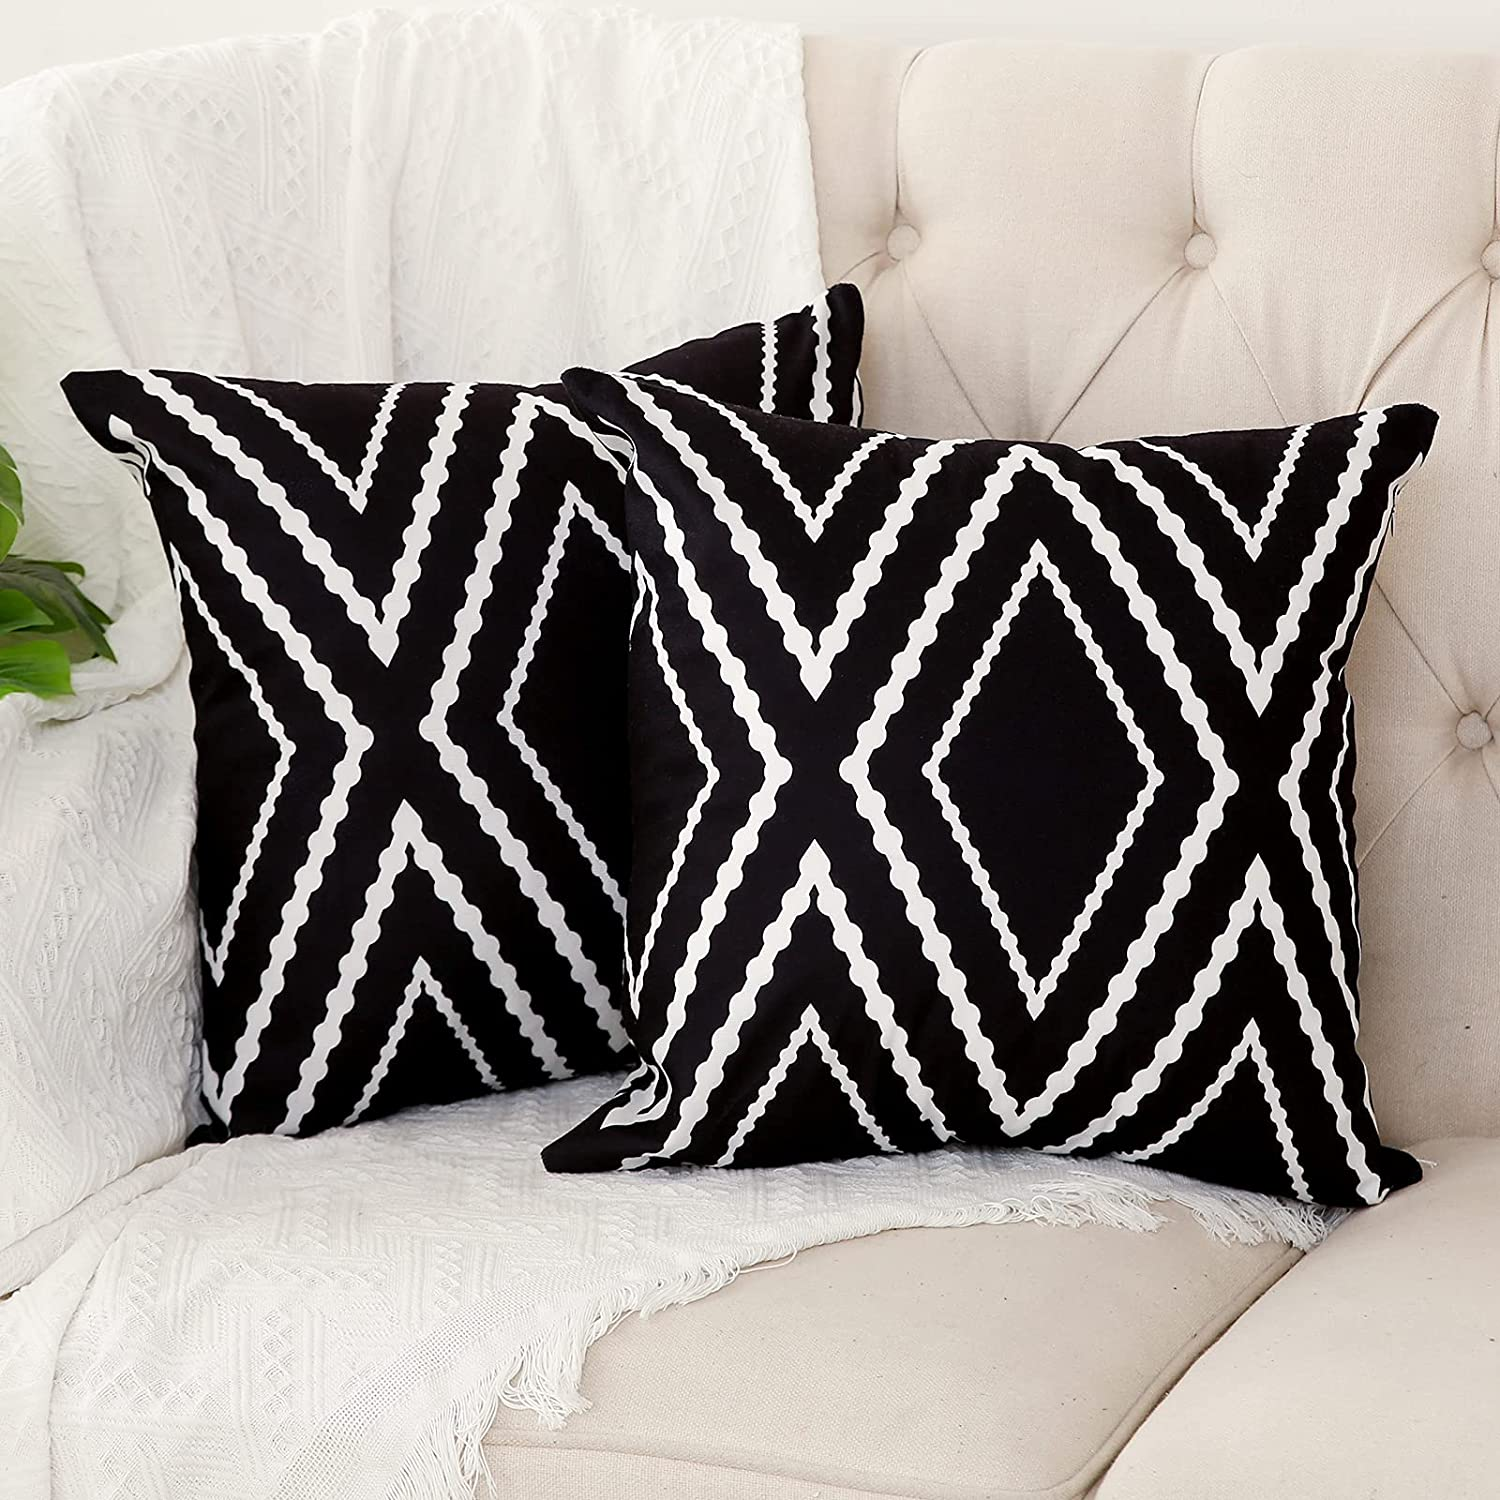 Kiuree Set of 2 Black and White 18 inches Pillow Covers cheap Super beauty product restock quality top Boh x